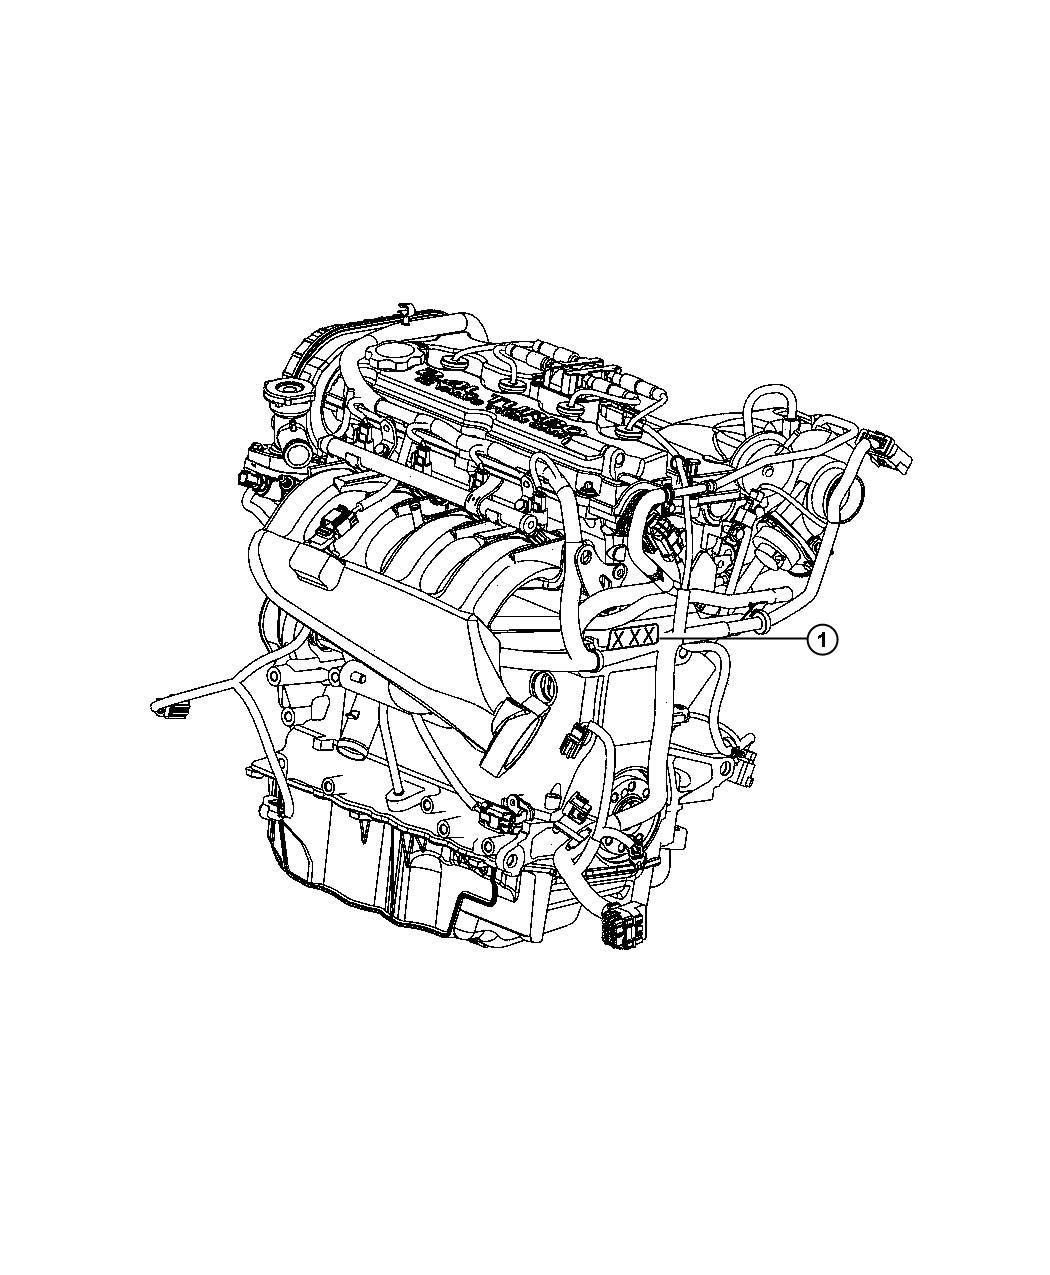 Dodge Neon Engine. Long block. Remanufactured. Turbo, dohc